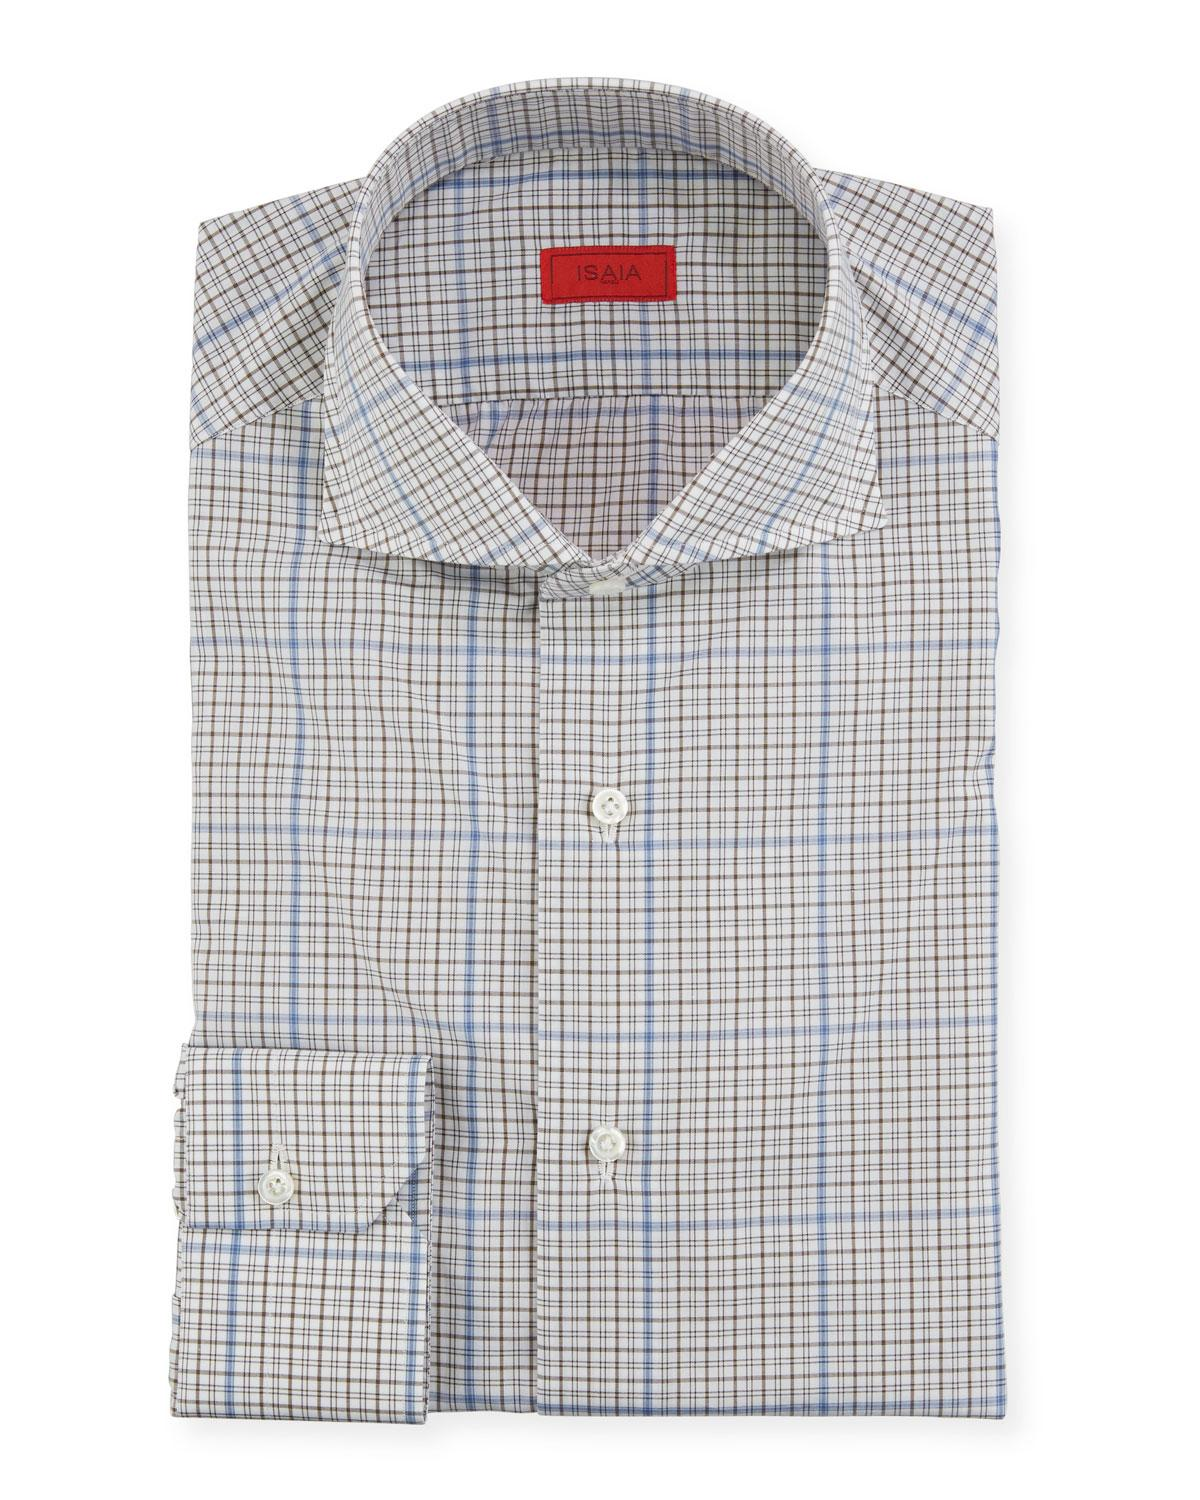 b76ea83c9 Isaia Men's Two-tone Check Dress Shirt in Blue for Men - Lyst